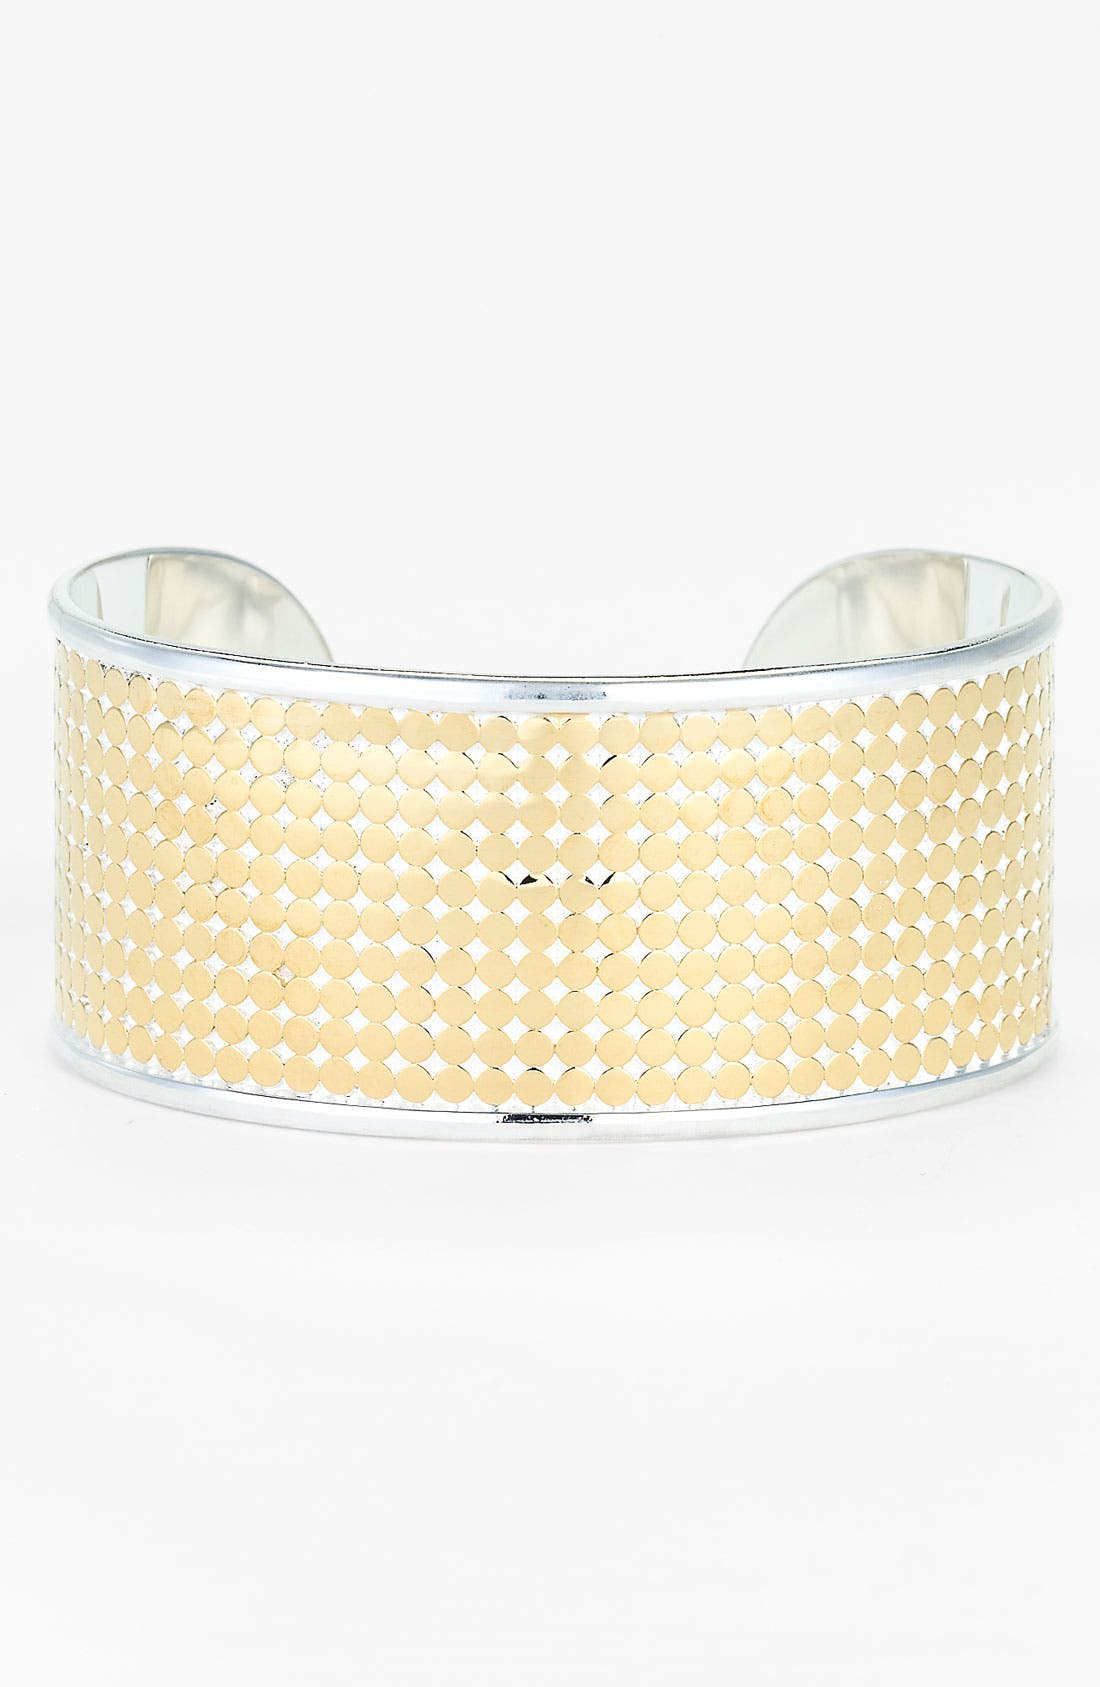 Main Image - Anna Beck 'Bali' Medium Cuff